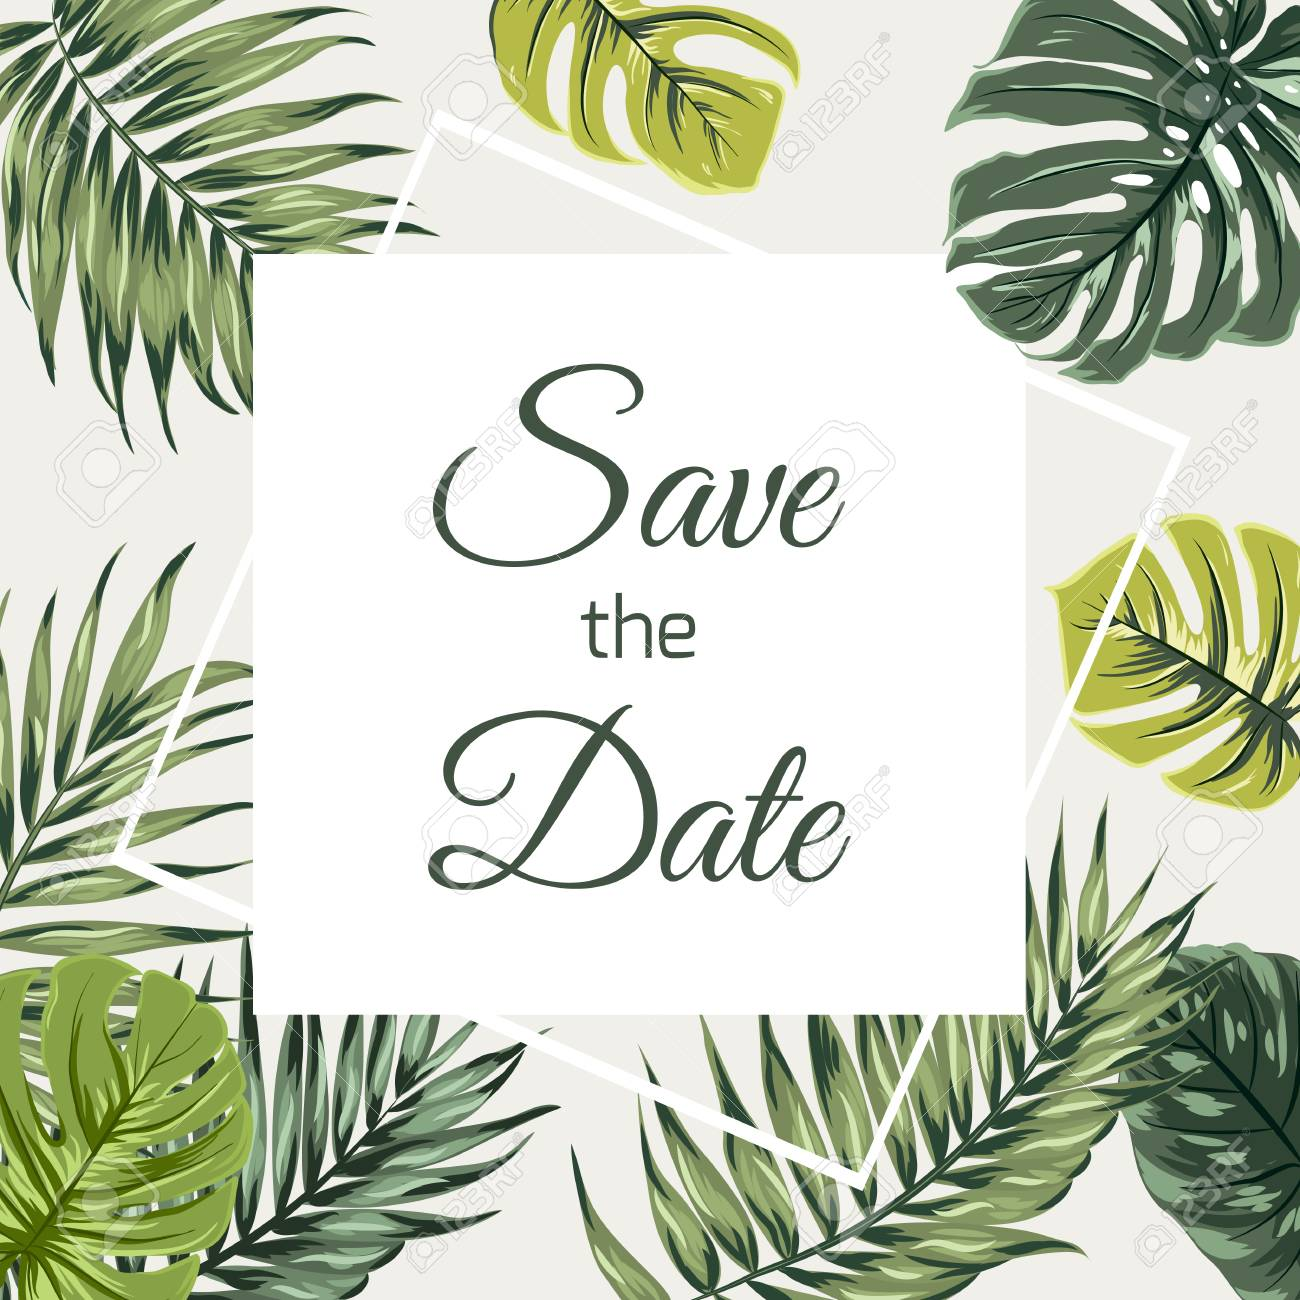 Save The Date Wedding Event Invitation Card Template Exotic